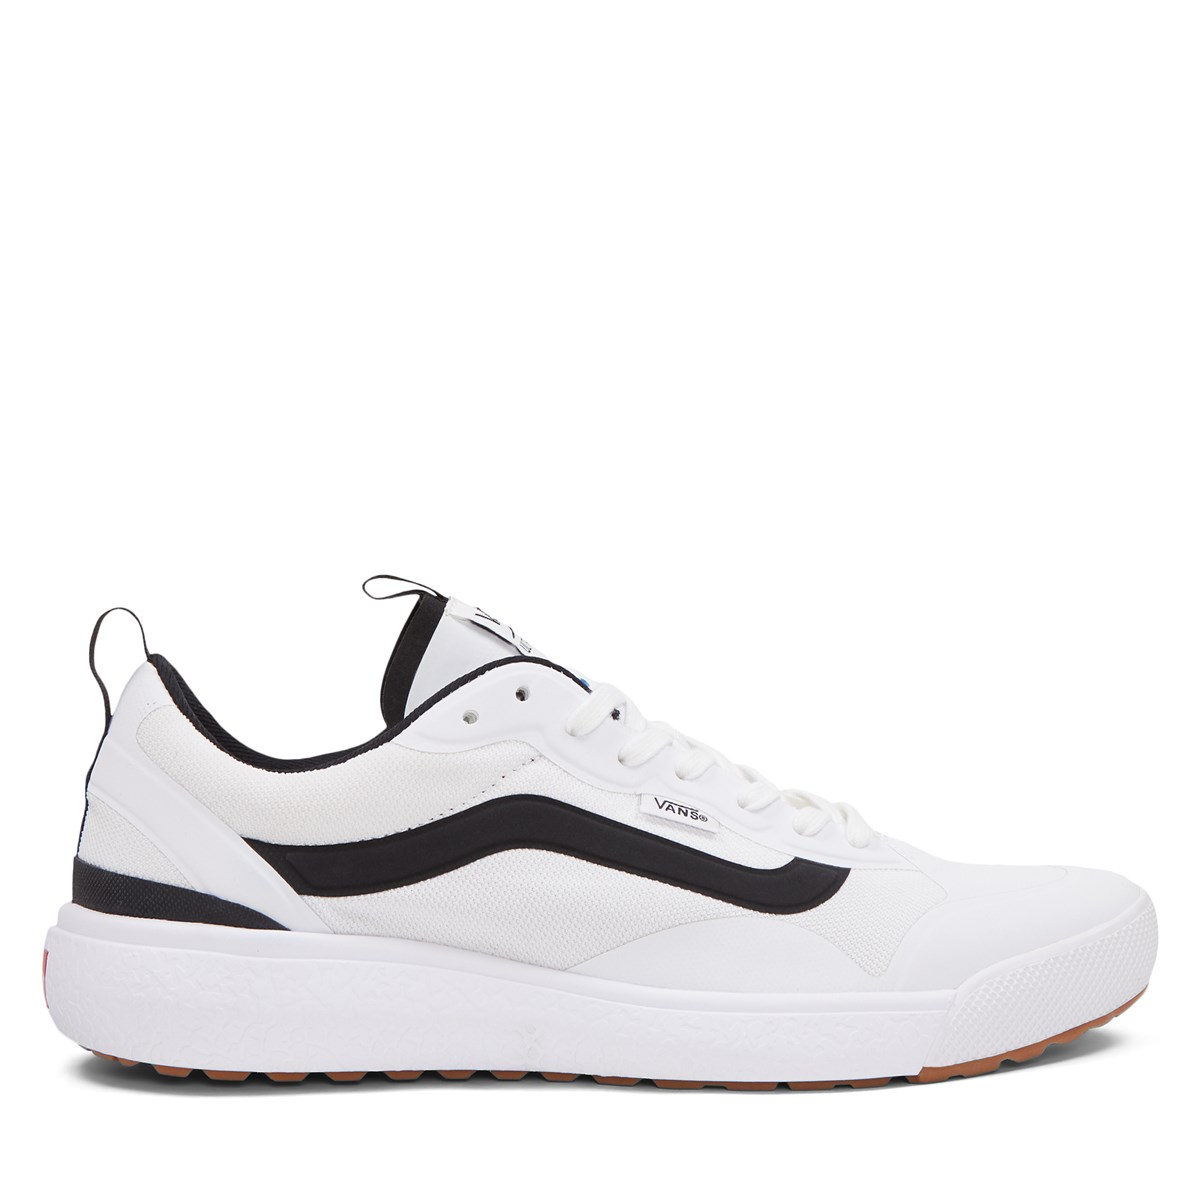 Men's UltraRange Exo Sneakers in White